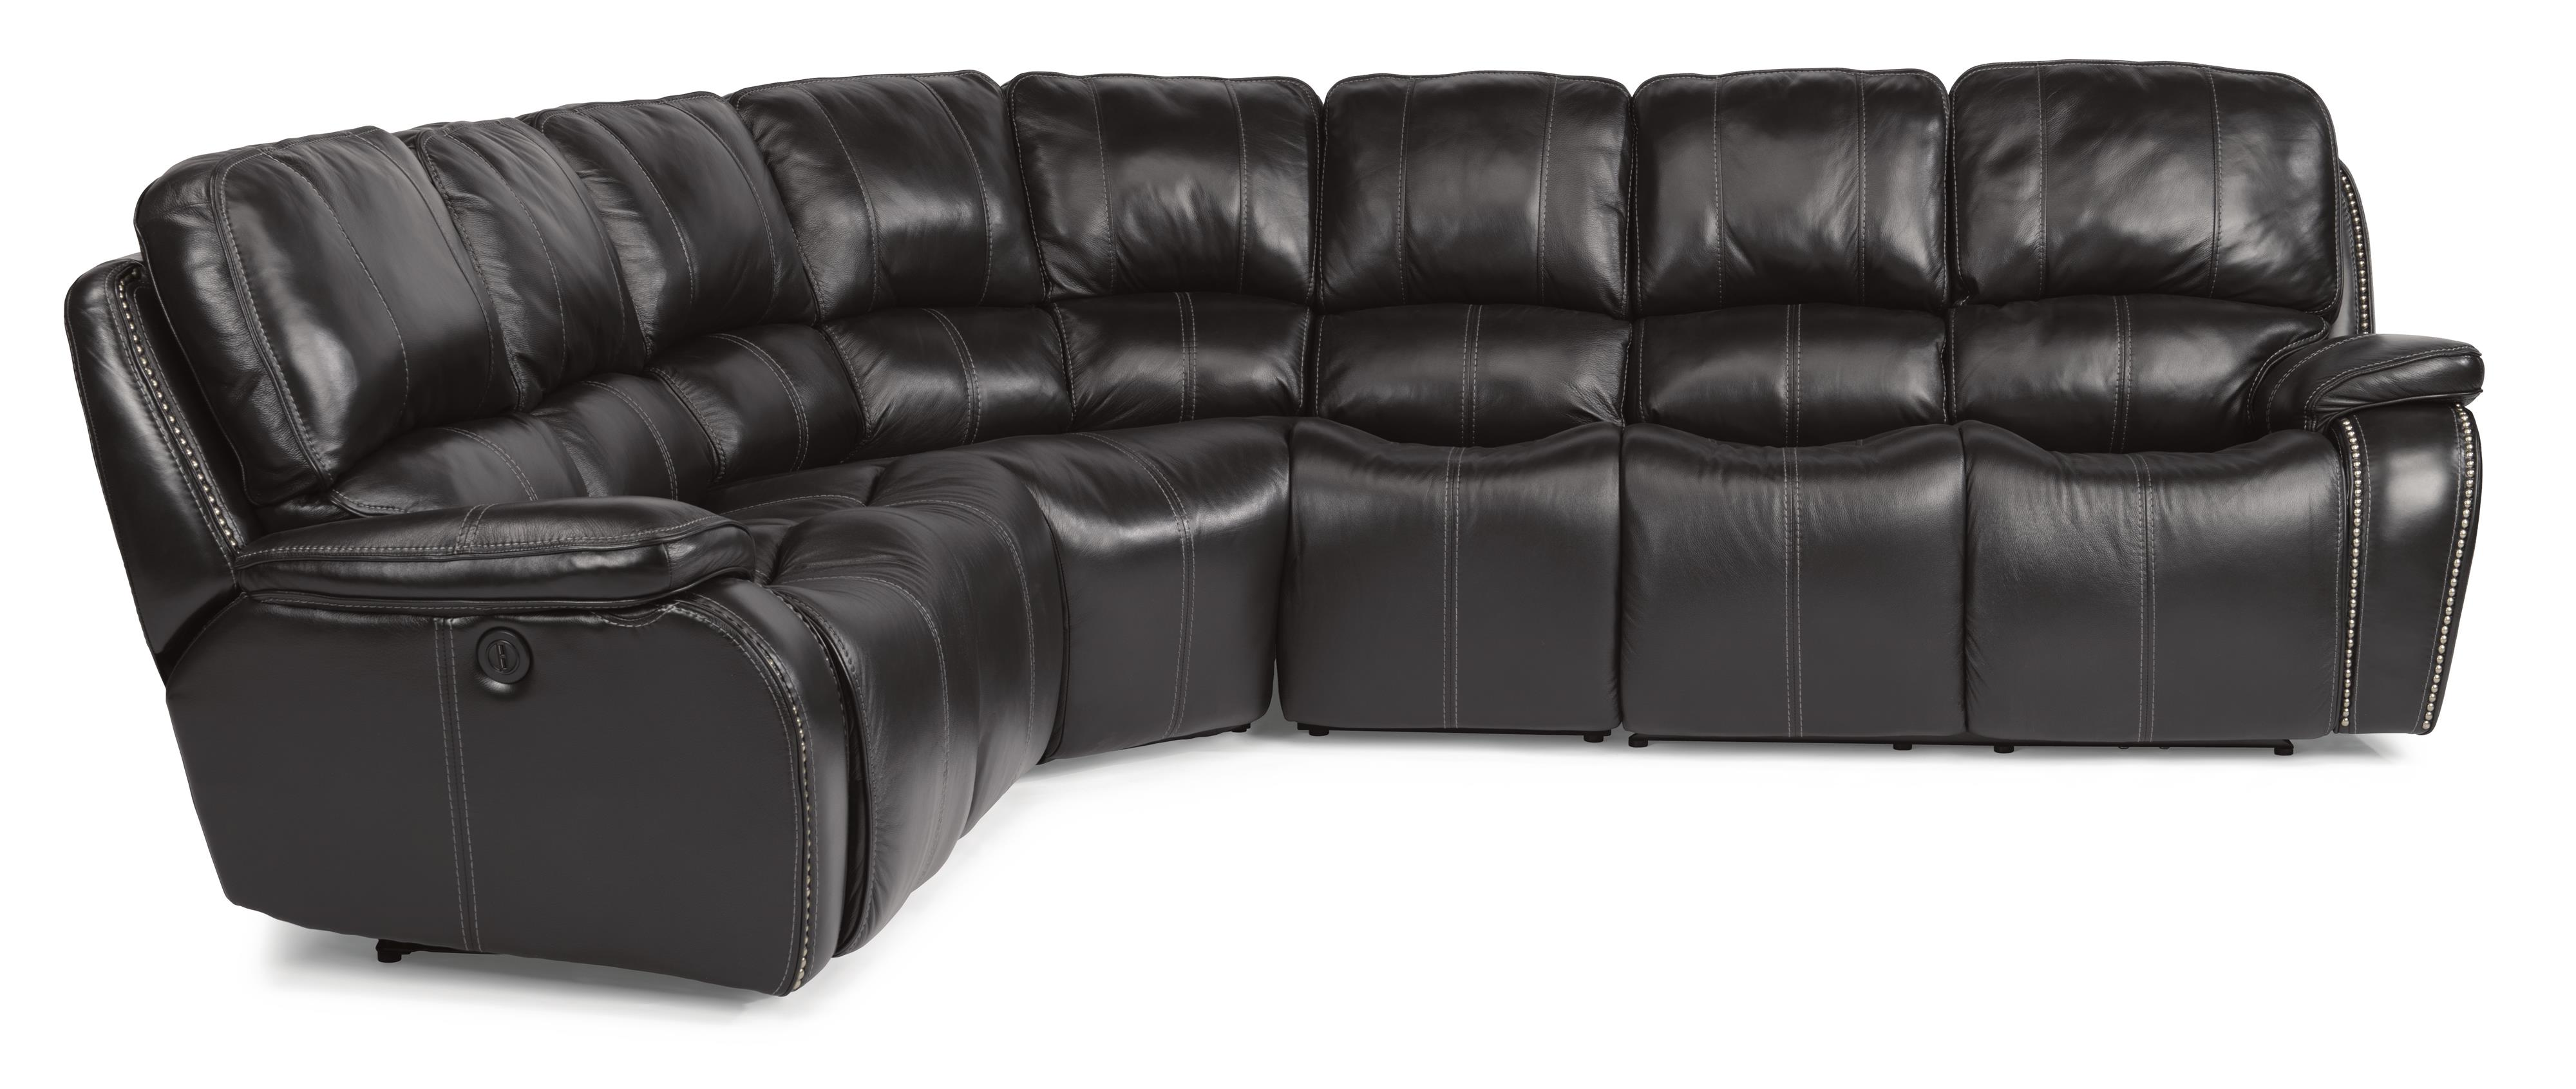 Flexsteel Latitudes-MacKay 4 Pc Power Reclining Sectional Sofa - Item Number: 1617-65P+19+23+66P-014-03LV